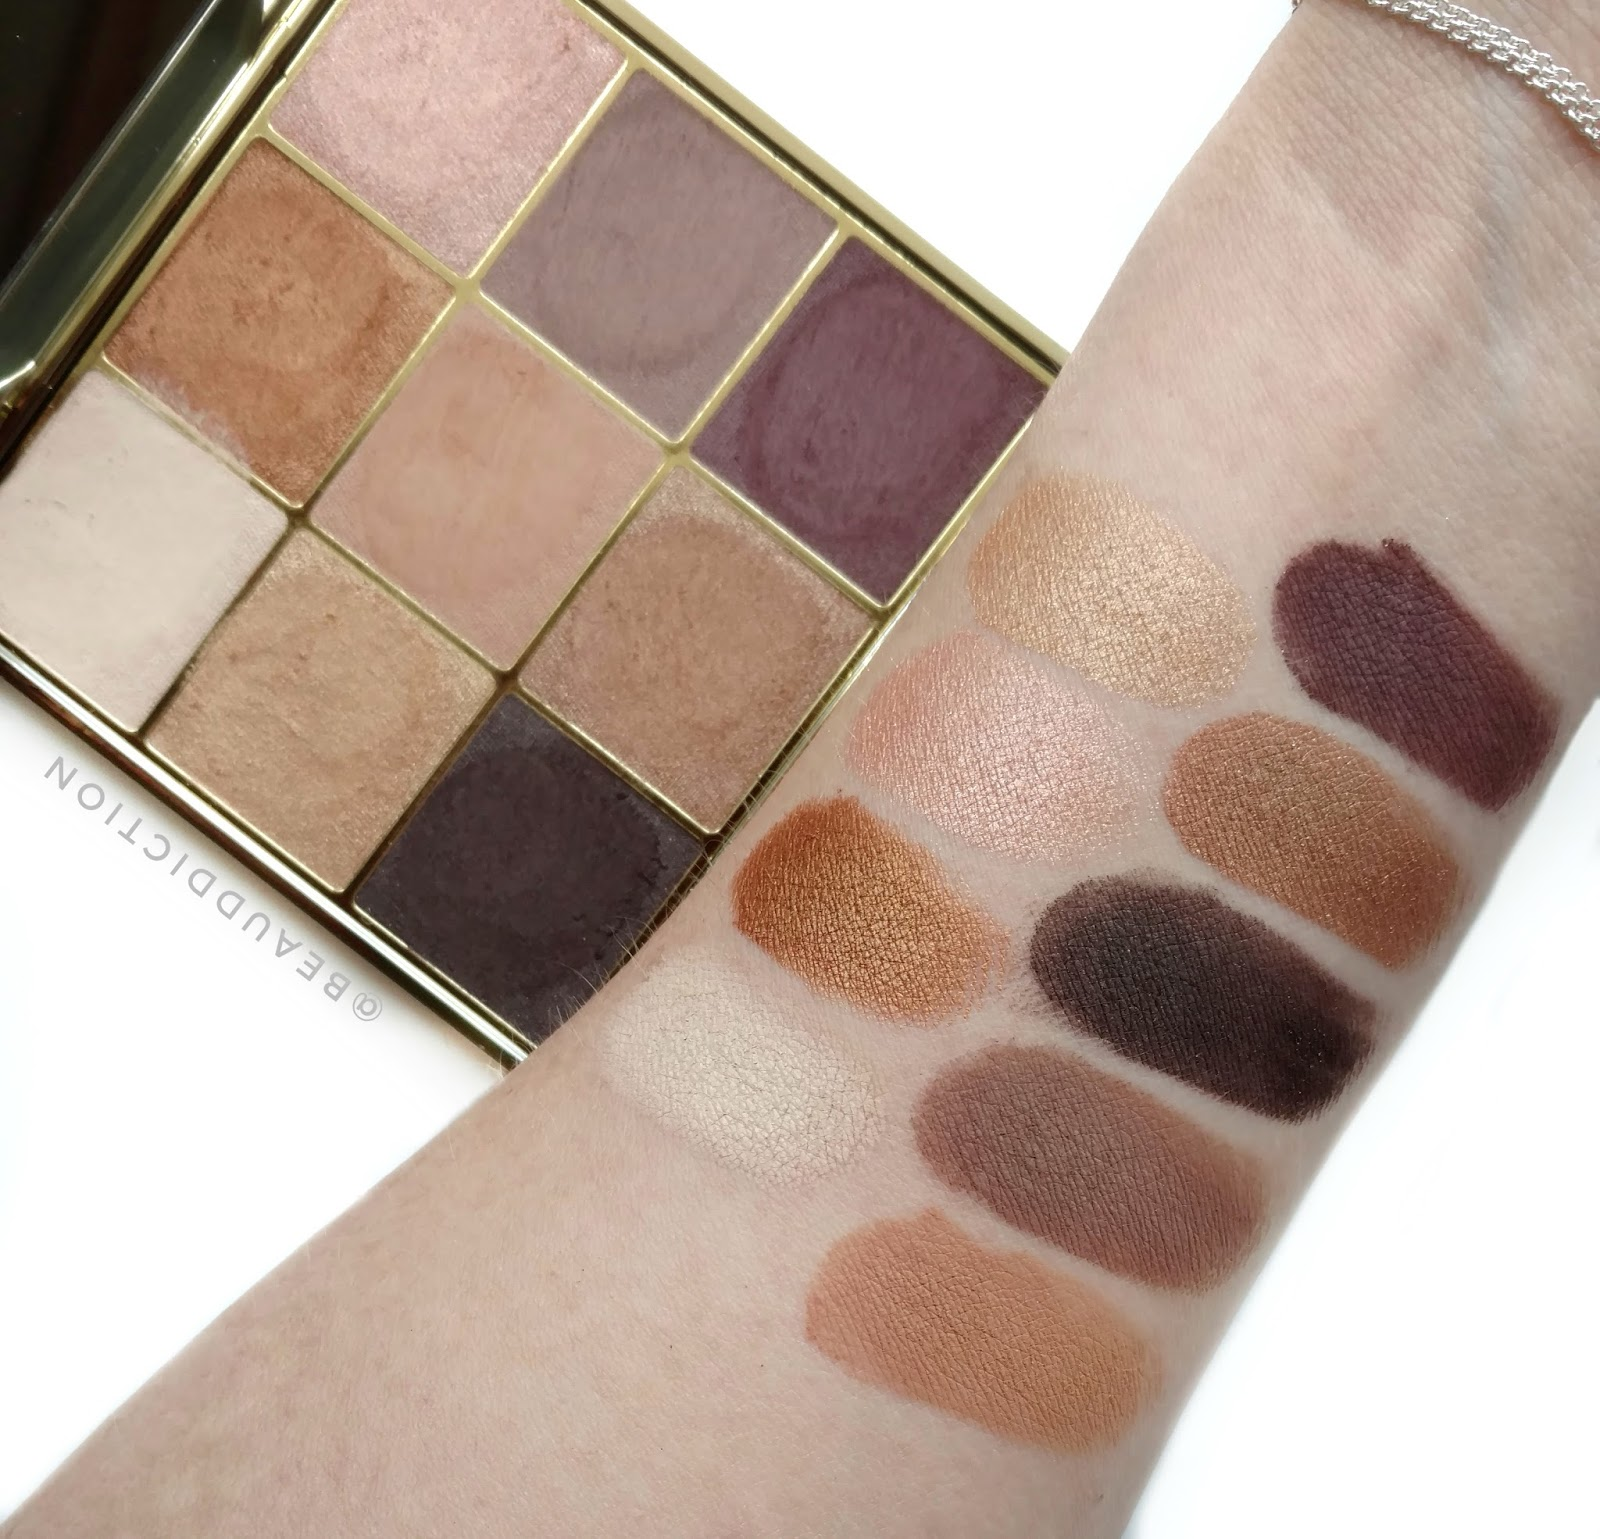 tarte make magic happen palette swatches